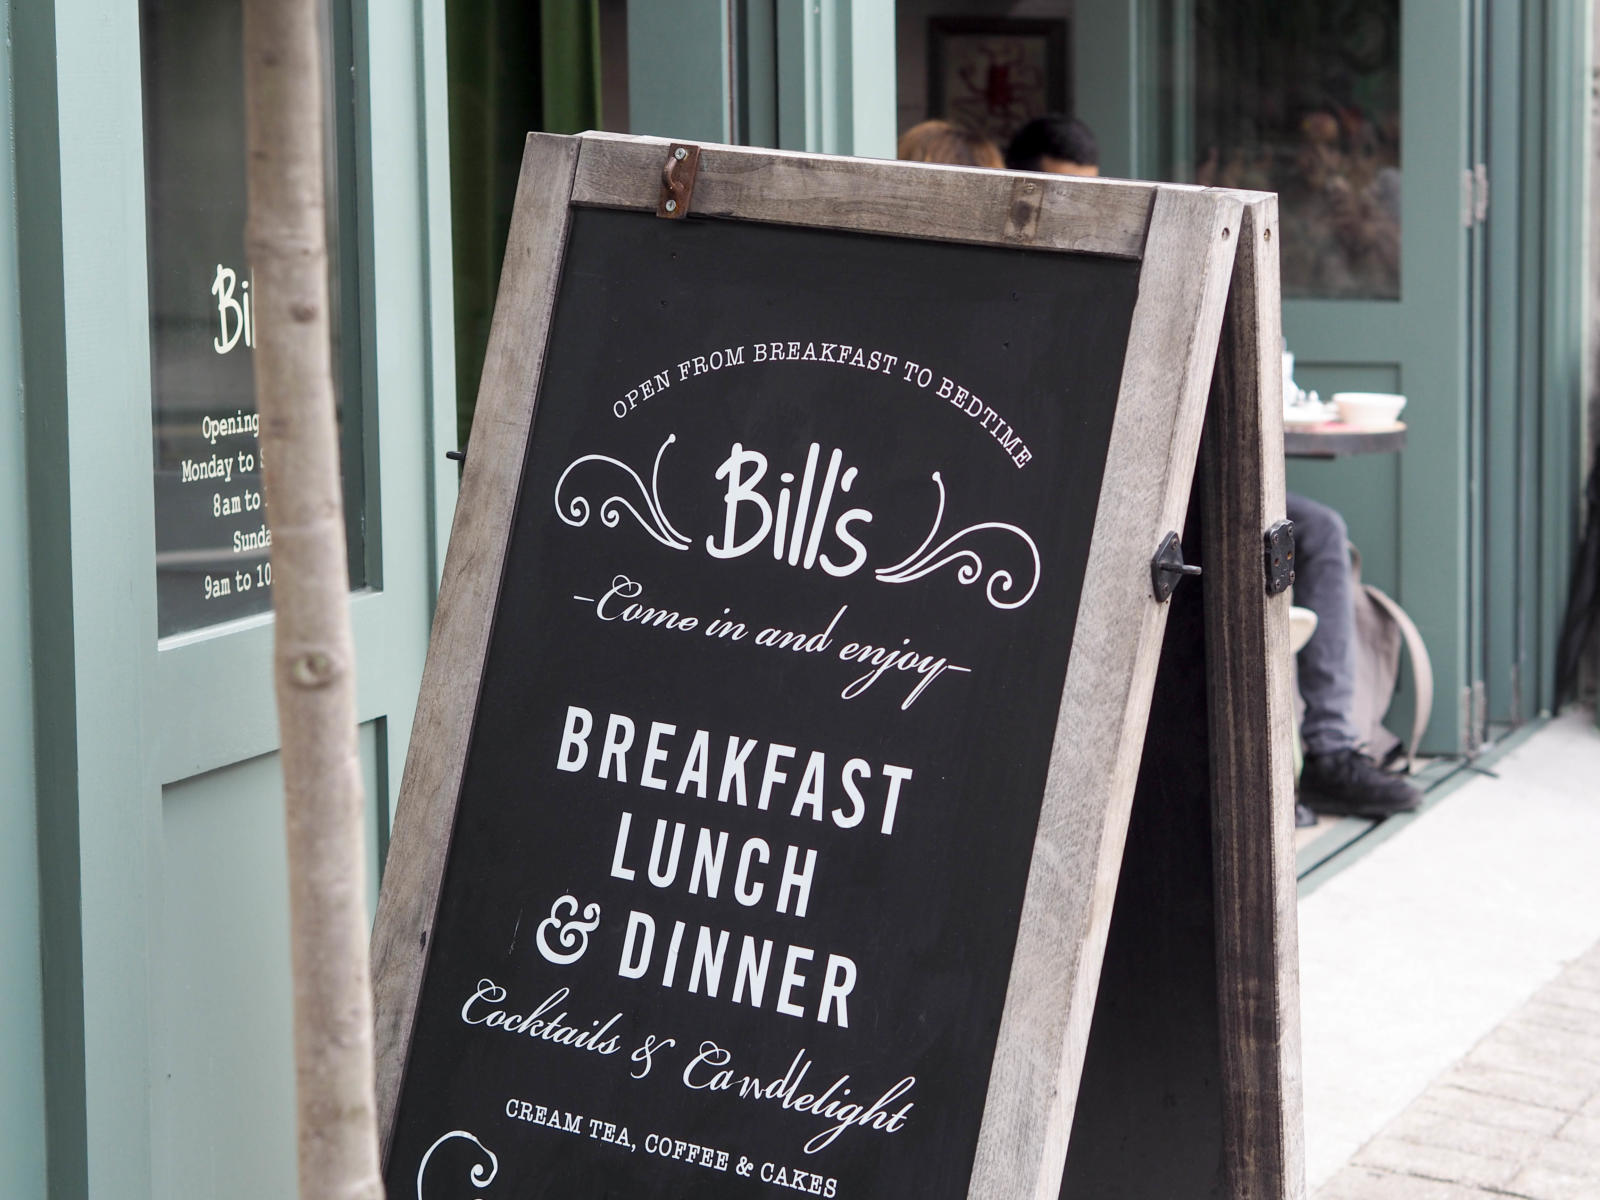 Review: Lunch at Bill's Brighton